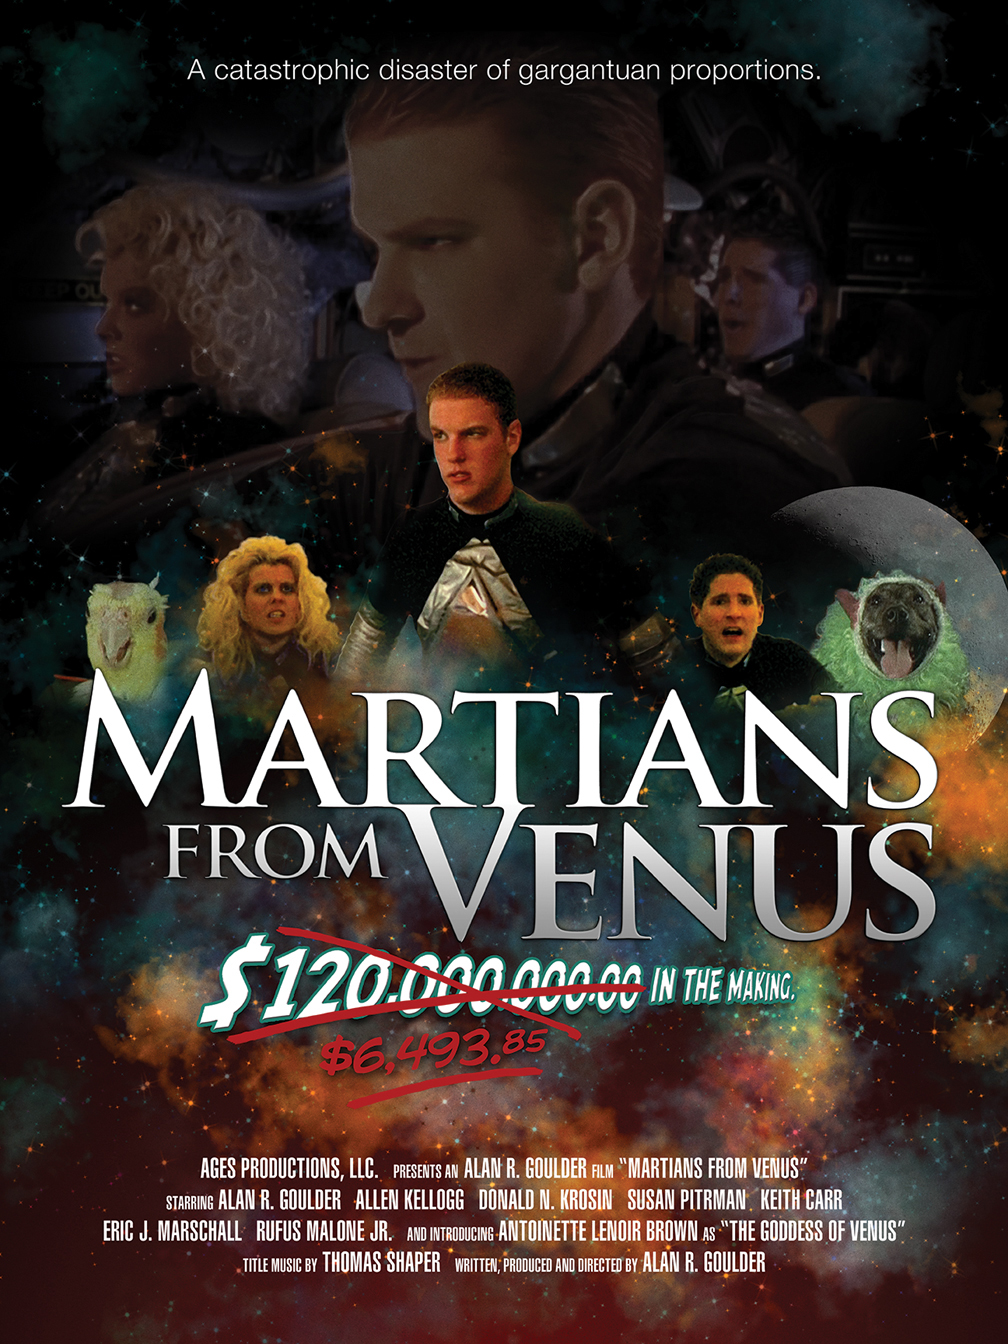 martians_from_venus_nickoson.jpg